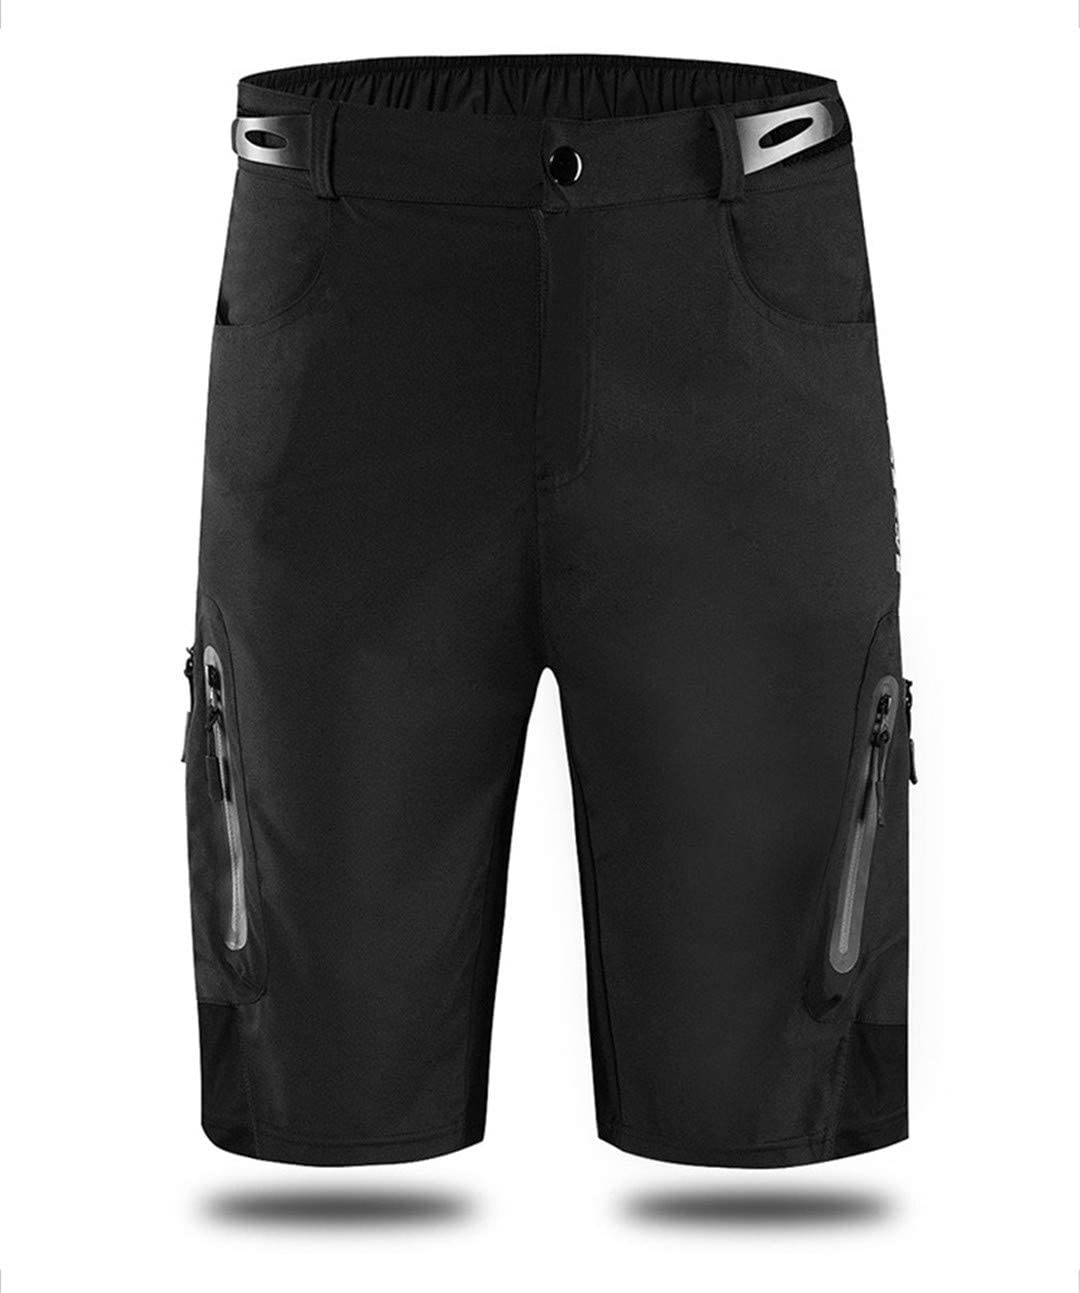 QXSH Outdoor Sports MTB Bike Bicycle Riding Short Zipped Pockets Water Resistant Reflective Cycling Shorts